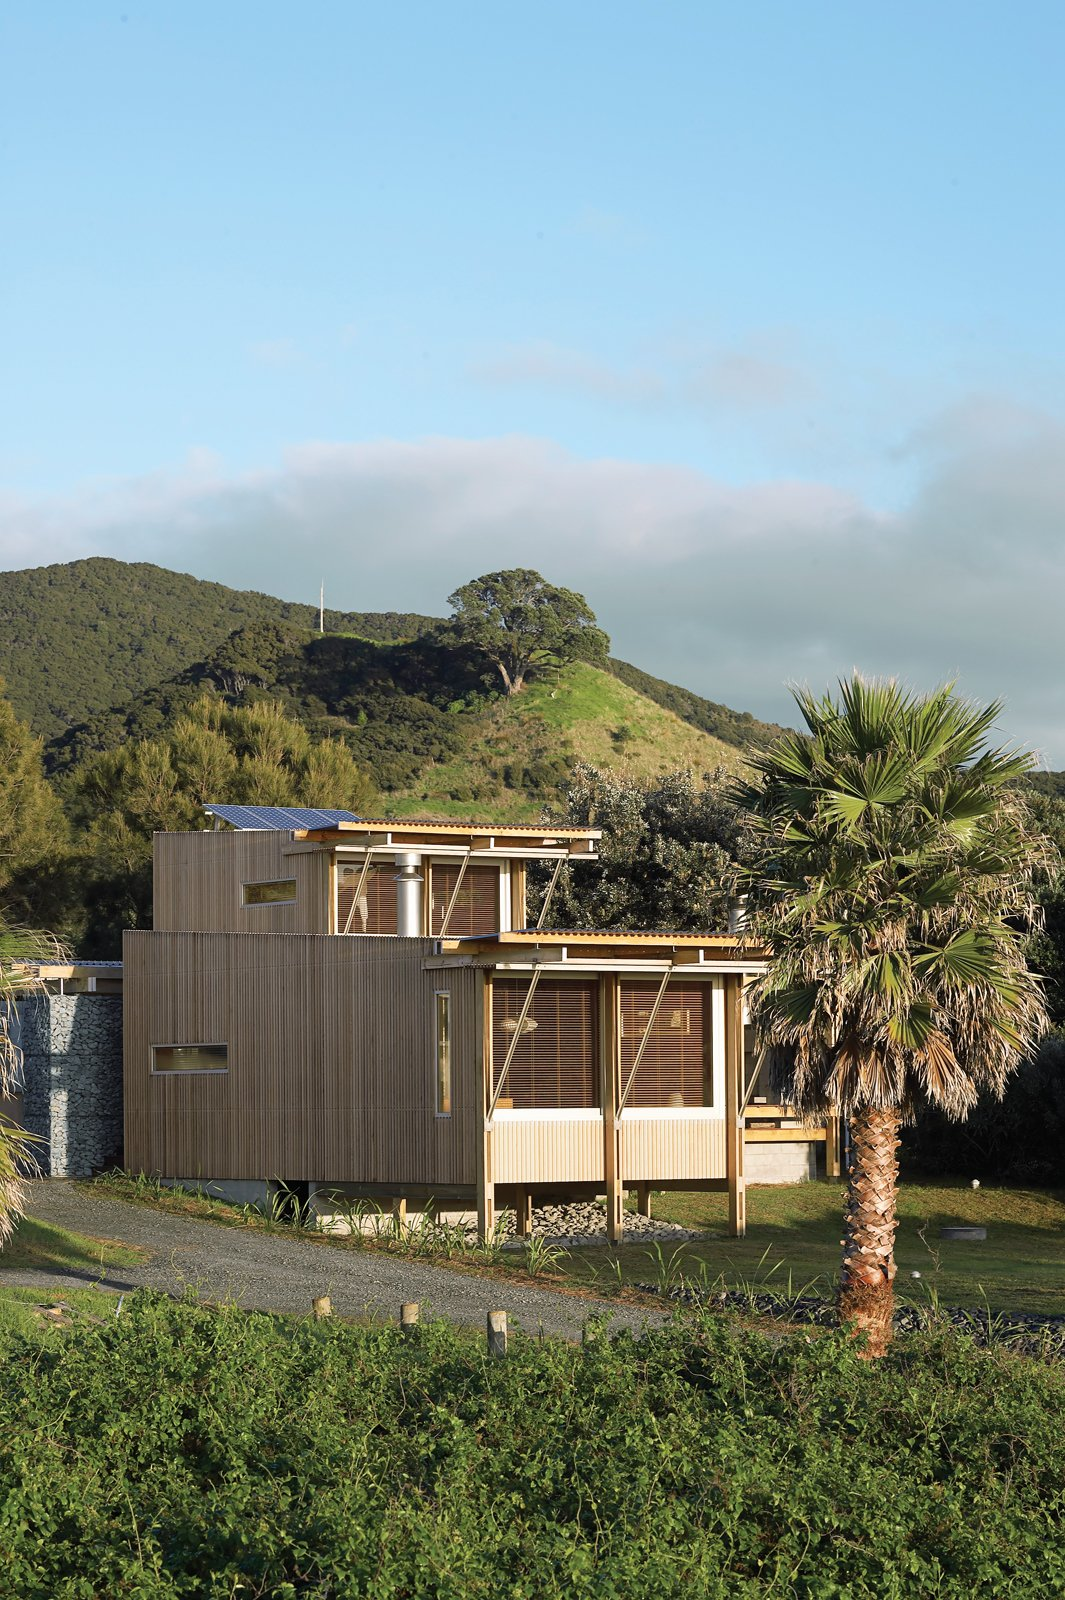 The cedar-clad home designed by Herbst Architects faces the Pacific Ocean, tucked behind sand dunes from the sparsely populated Medlands Beach. Tagged: Exterior, House, Wood Siding Material, and Flat RoofLine.  Best Photos from New Zealand Vacation Home Designed Completely Off the Grid